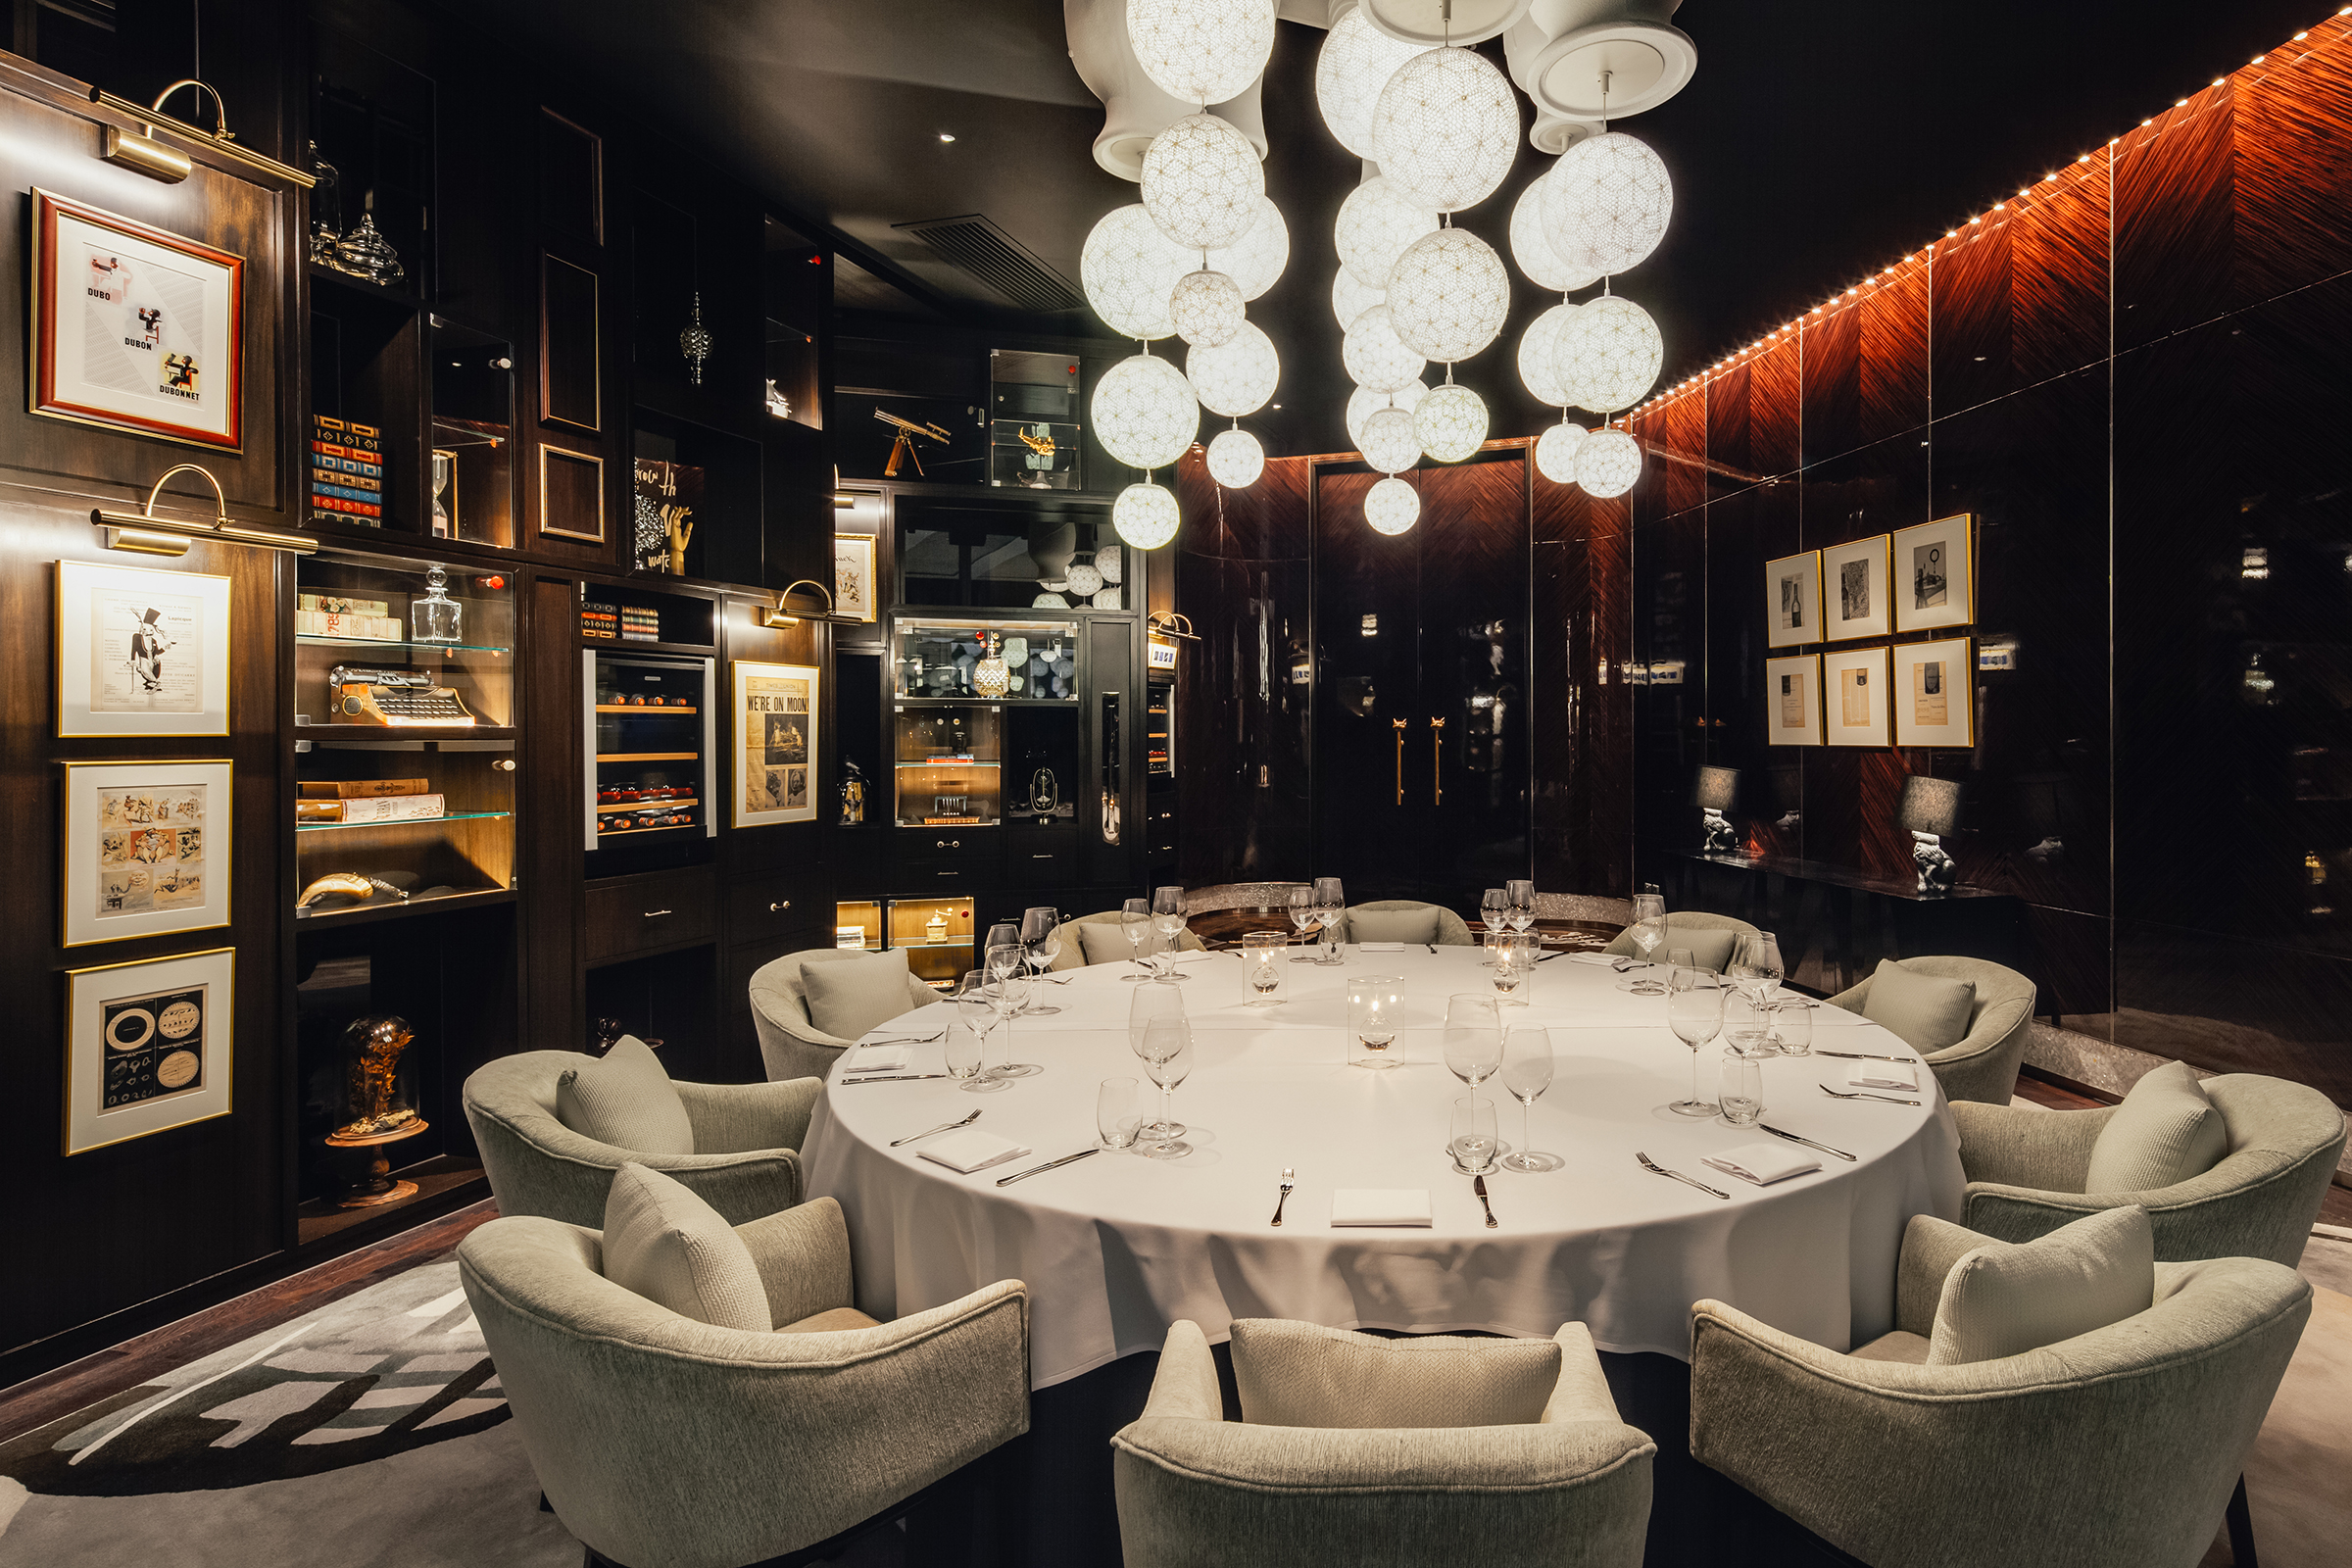 The carpet in both dining rooms is a piece of conversational artwork inspired by poetry. The carpet in the large private dining room is based on Jules Verne's  De la Terre à la Lune  (From the Earth to the Moon) and features a collection of custom-designed hot air balloons.